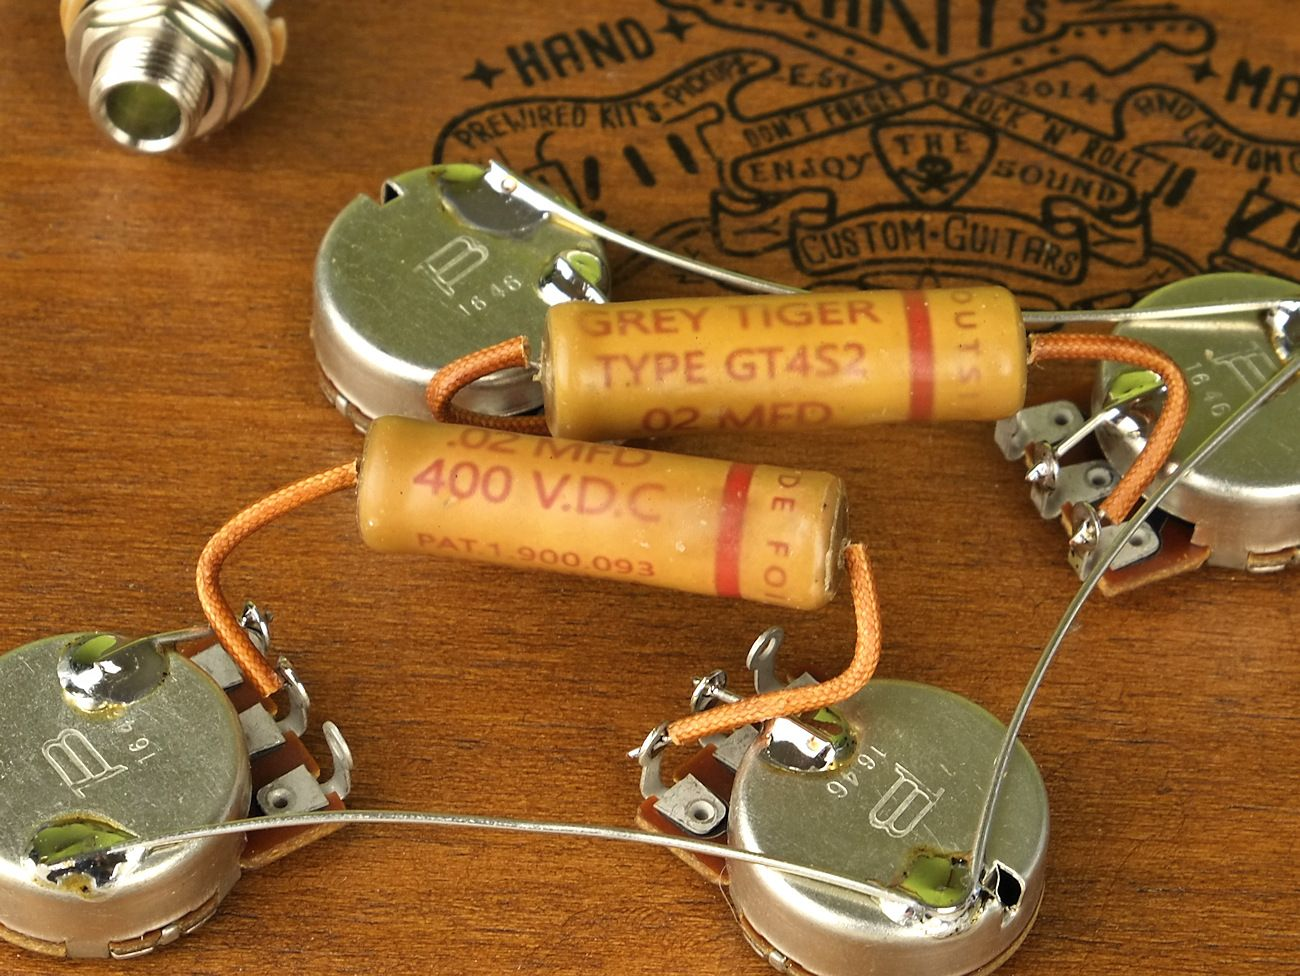 hight resolution of arty s custom guitars vintage pre wired prewired kit grey tiger bourns wiring assembly harness set